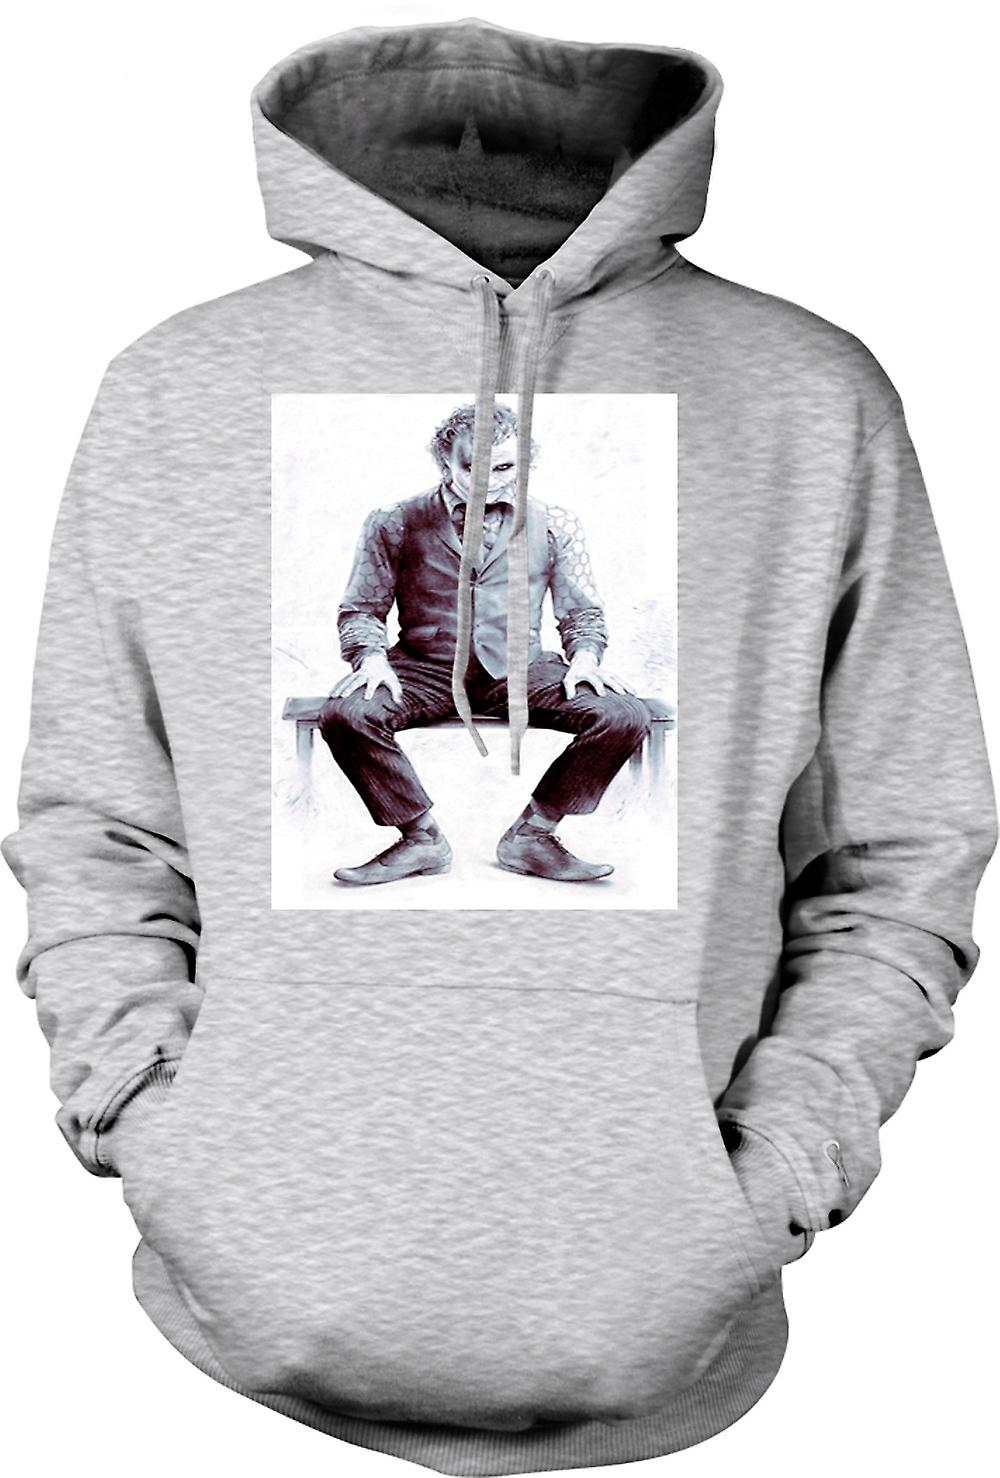 Mens-Hoodie - Sitting Joker - Batman